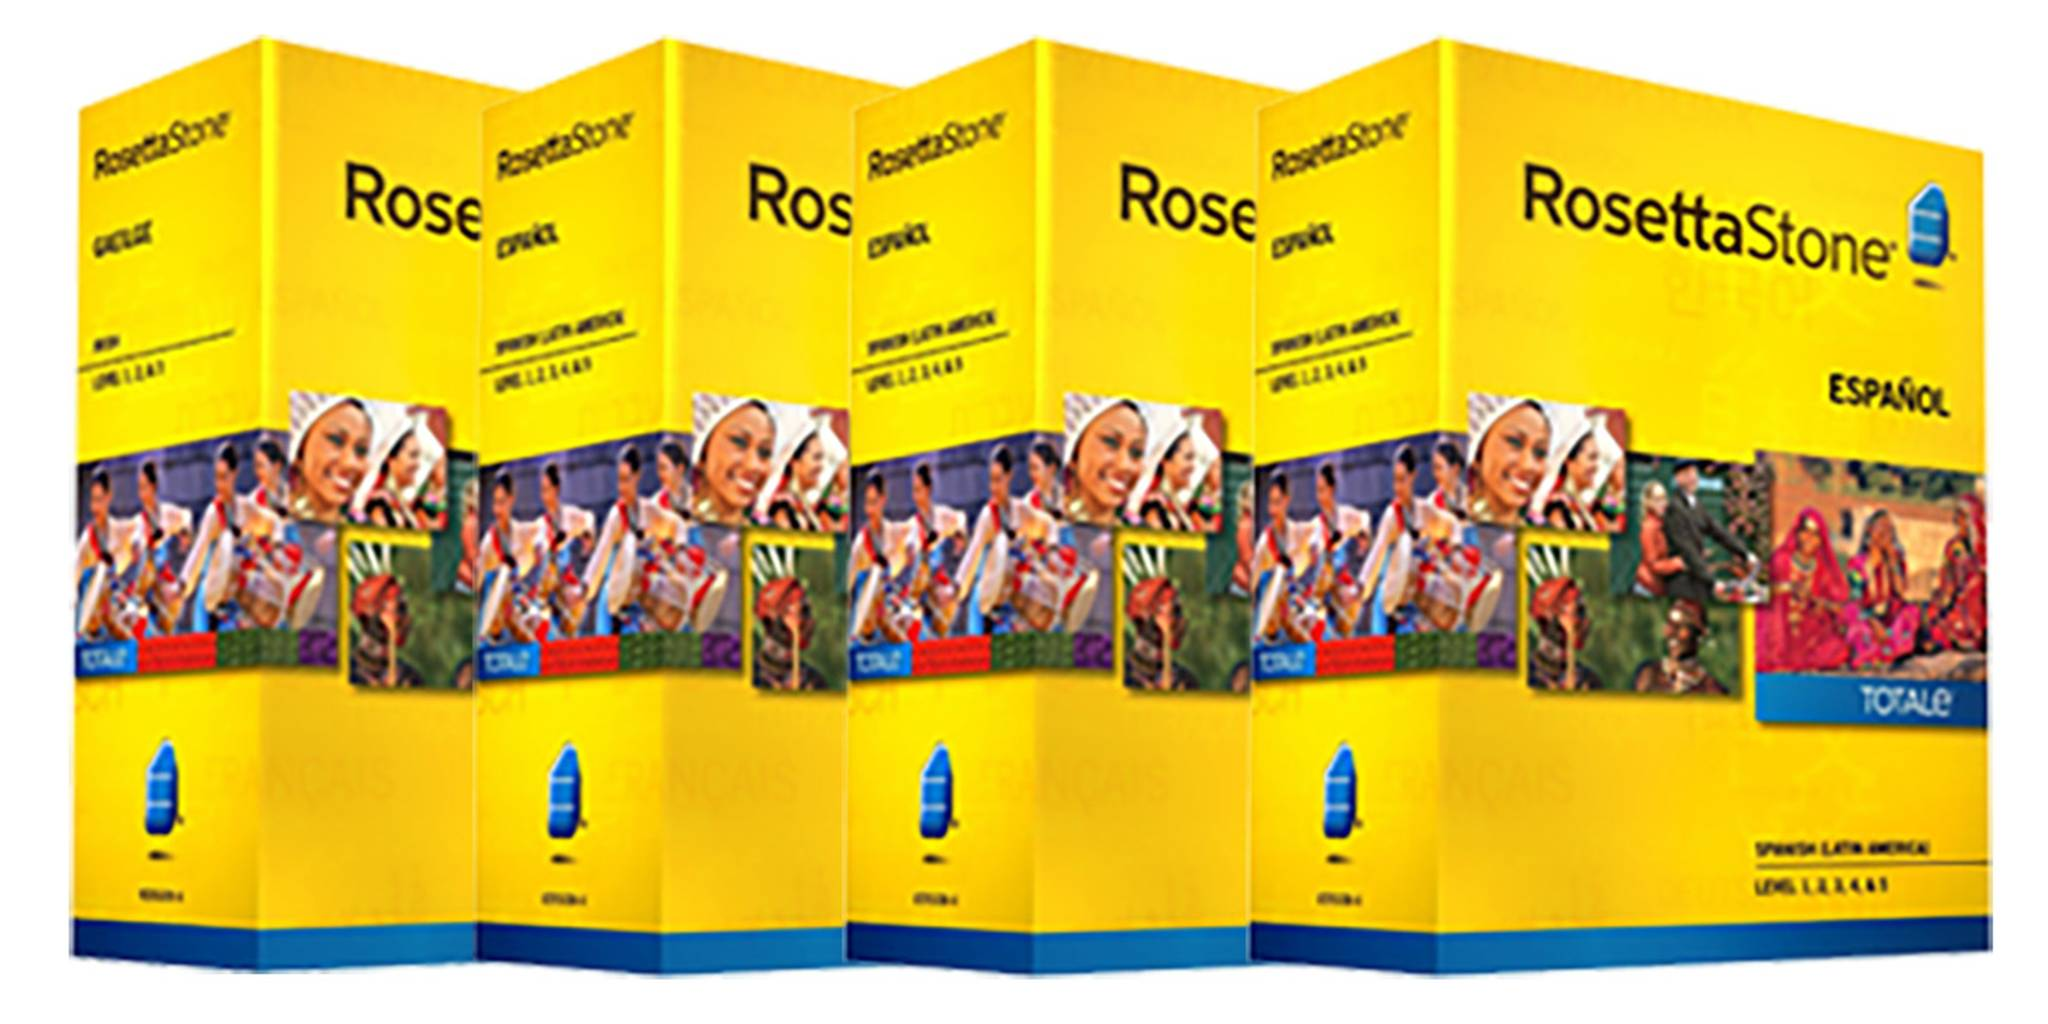 Rosetta Stone Deal On Amazon Is Cheaper Than Overpriced Textbooks